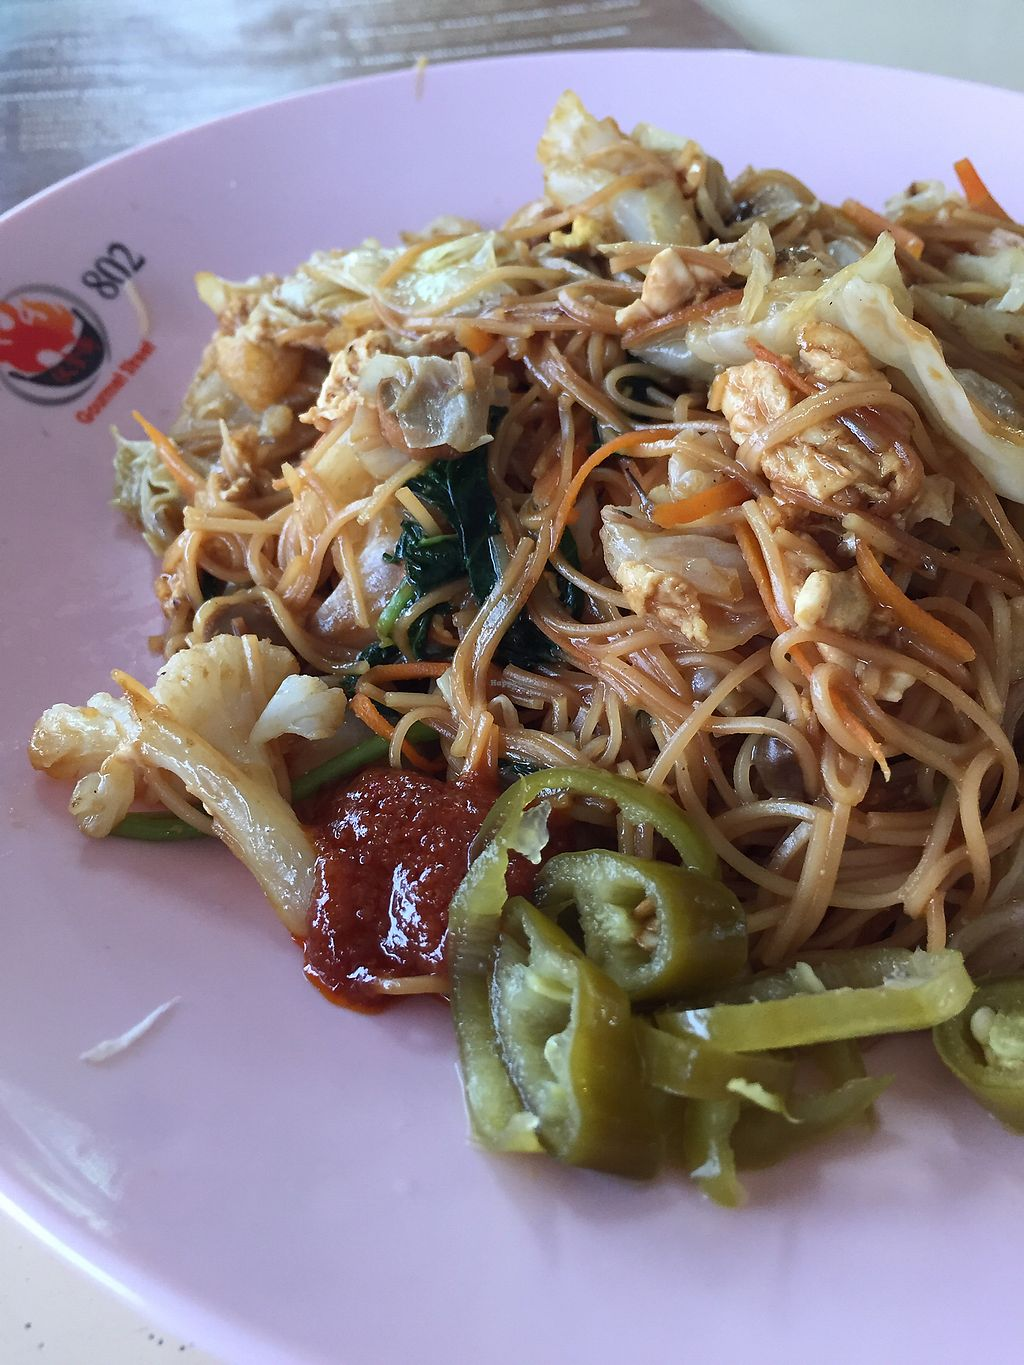 """Photo of CLOSED: Eastern Pure Vegetarian Food  by <a href=""""/members/profile/verywanderful"""">verywanderful</a> <br/>Fried Mee Sua <br/> August 20, 2017  - <a href='/contact/abuse/image/98465/294801'>Report</a>"""